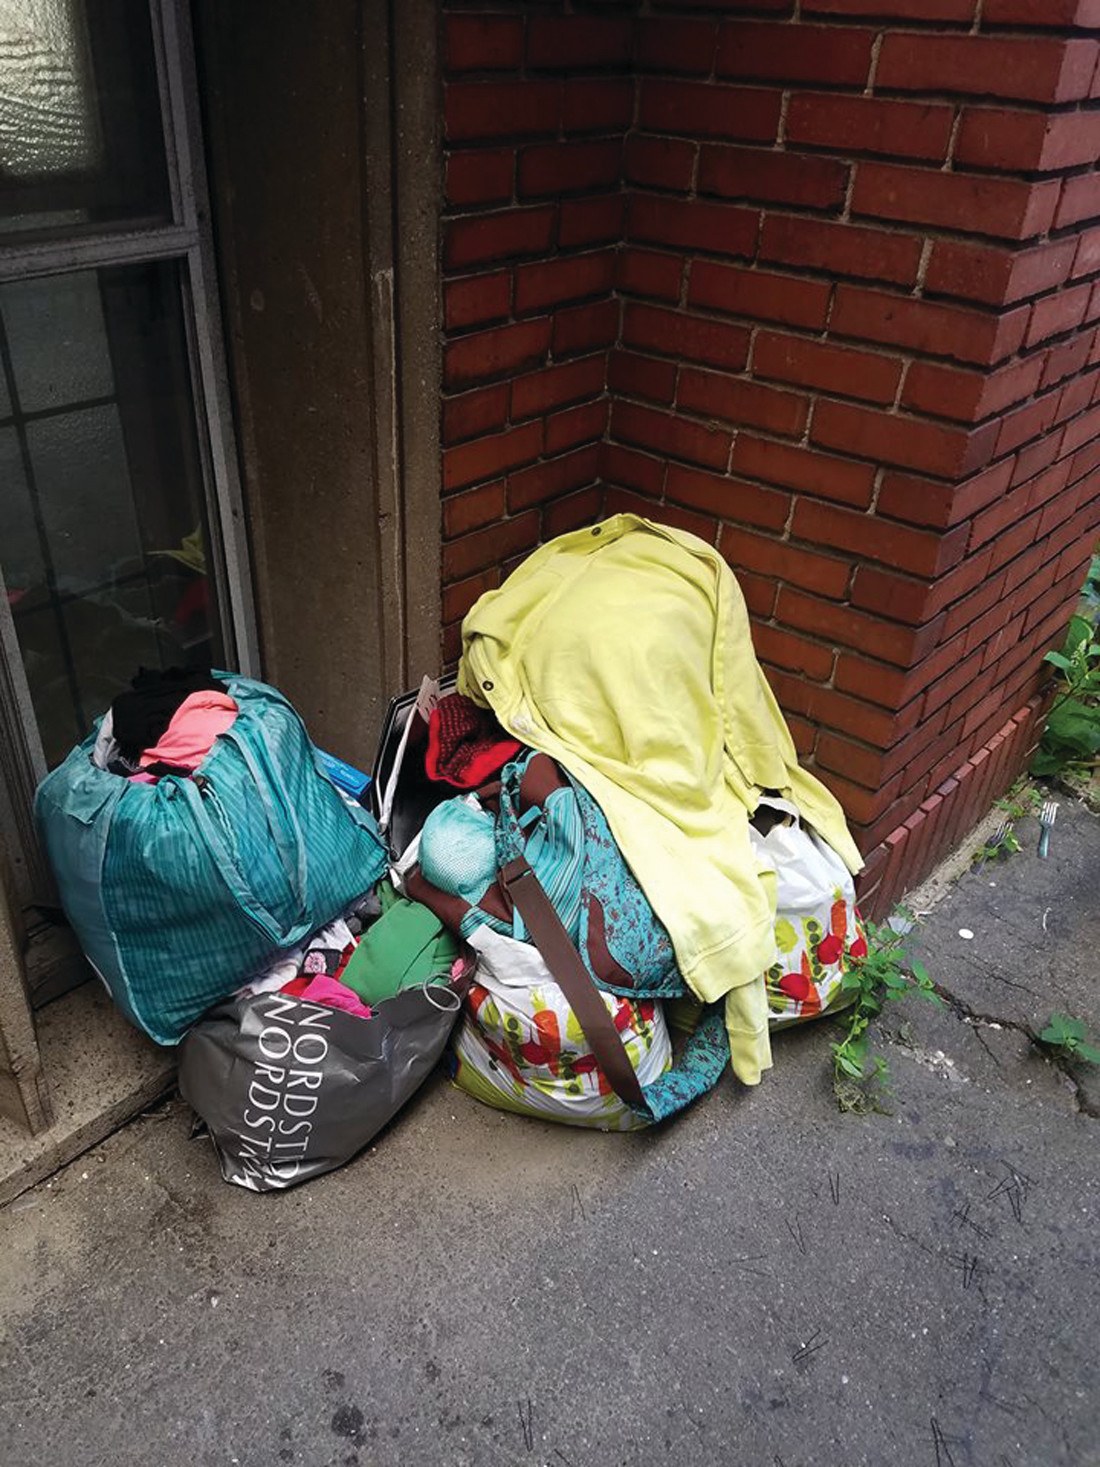 WHERE HAS SHE GONE? These bags of personal items in an alleyway were all that Kelly could find when she recently went looking for her daughter.